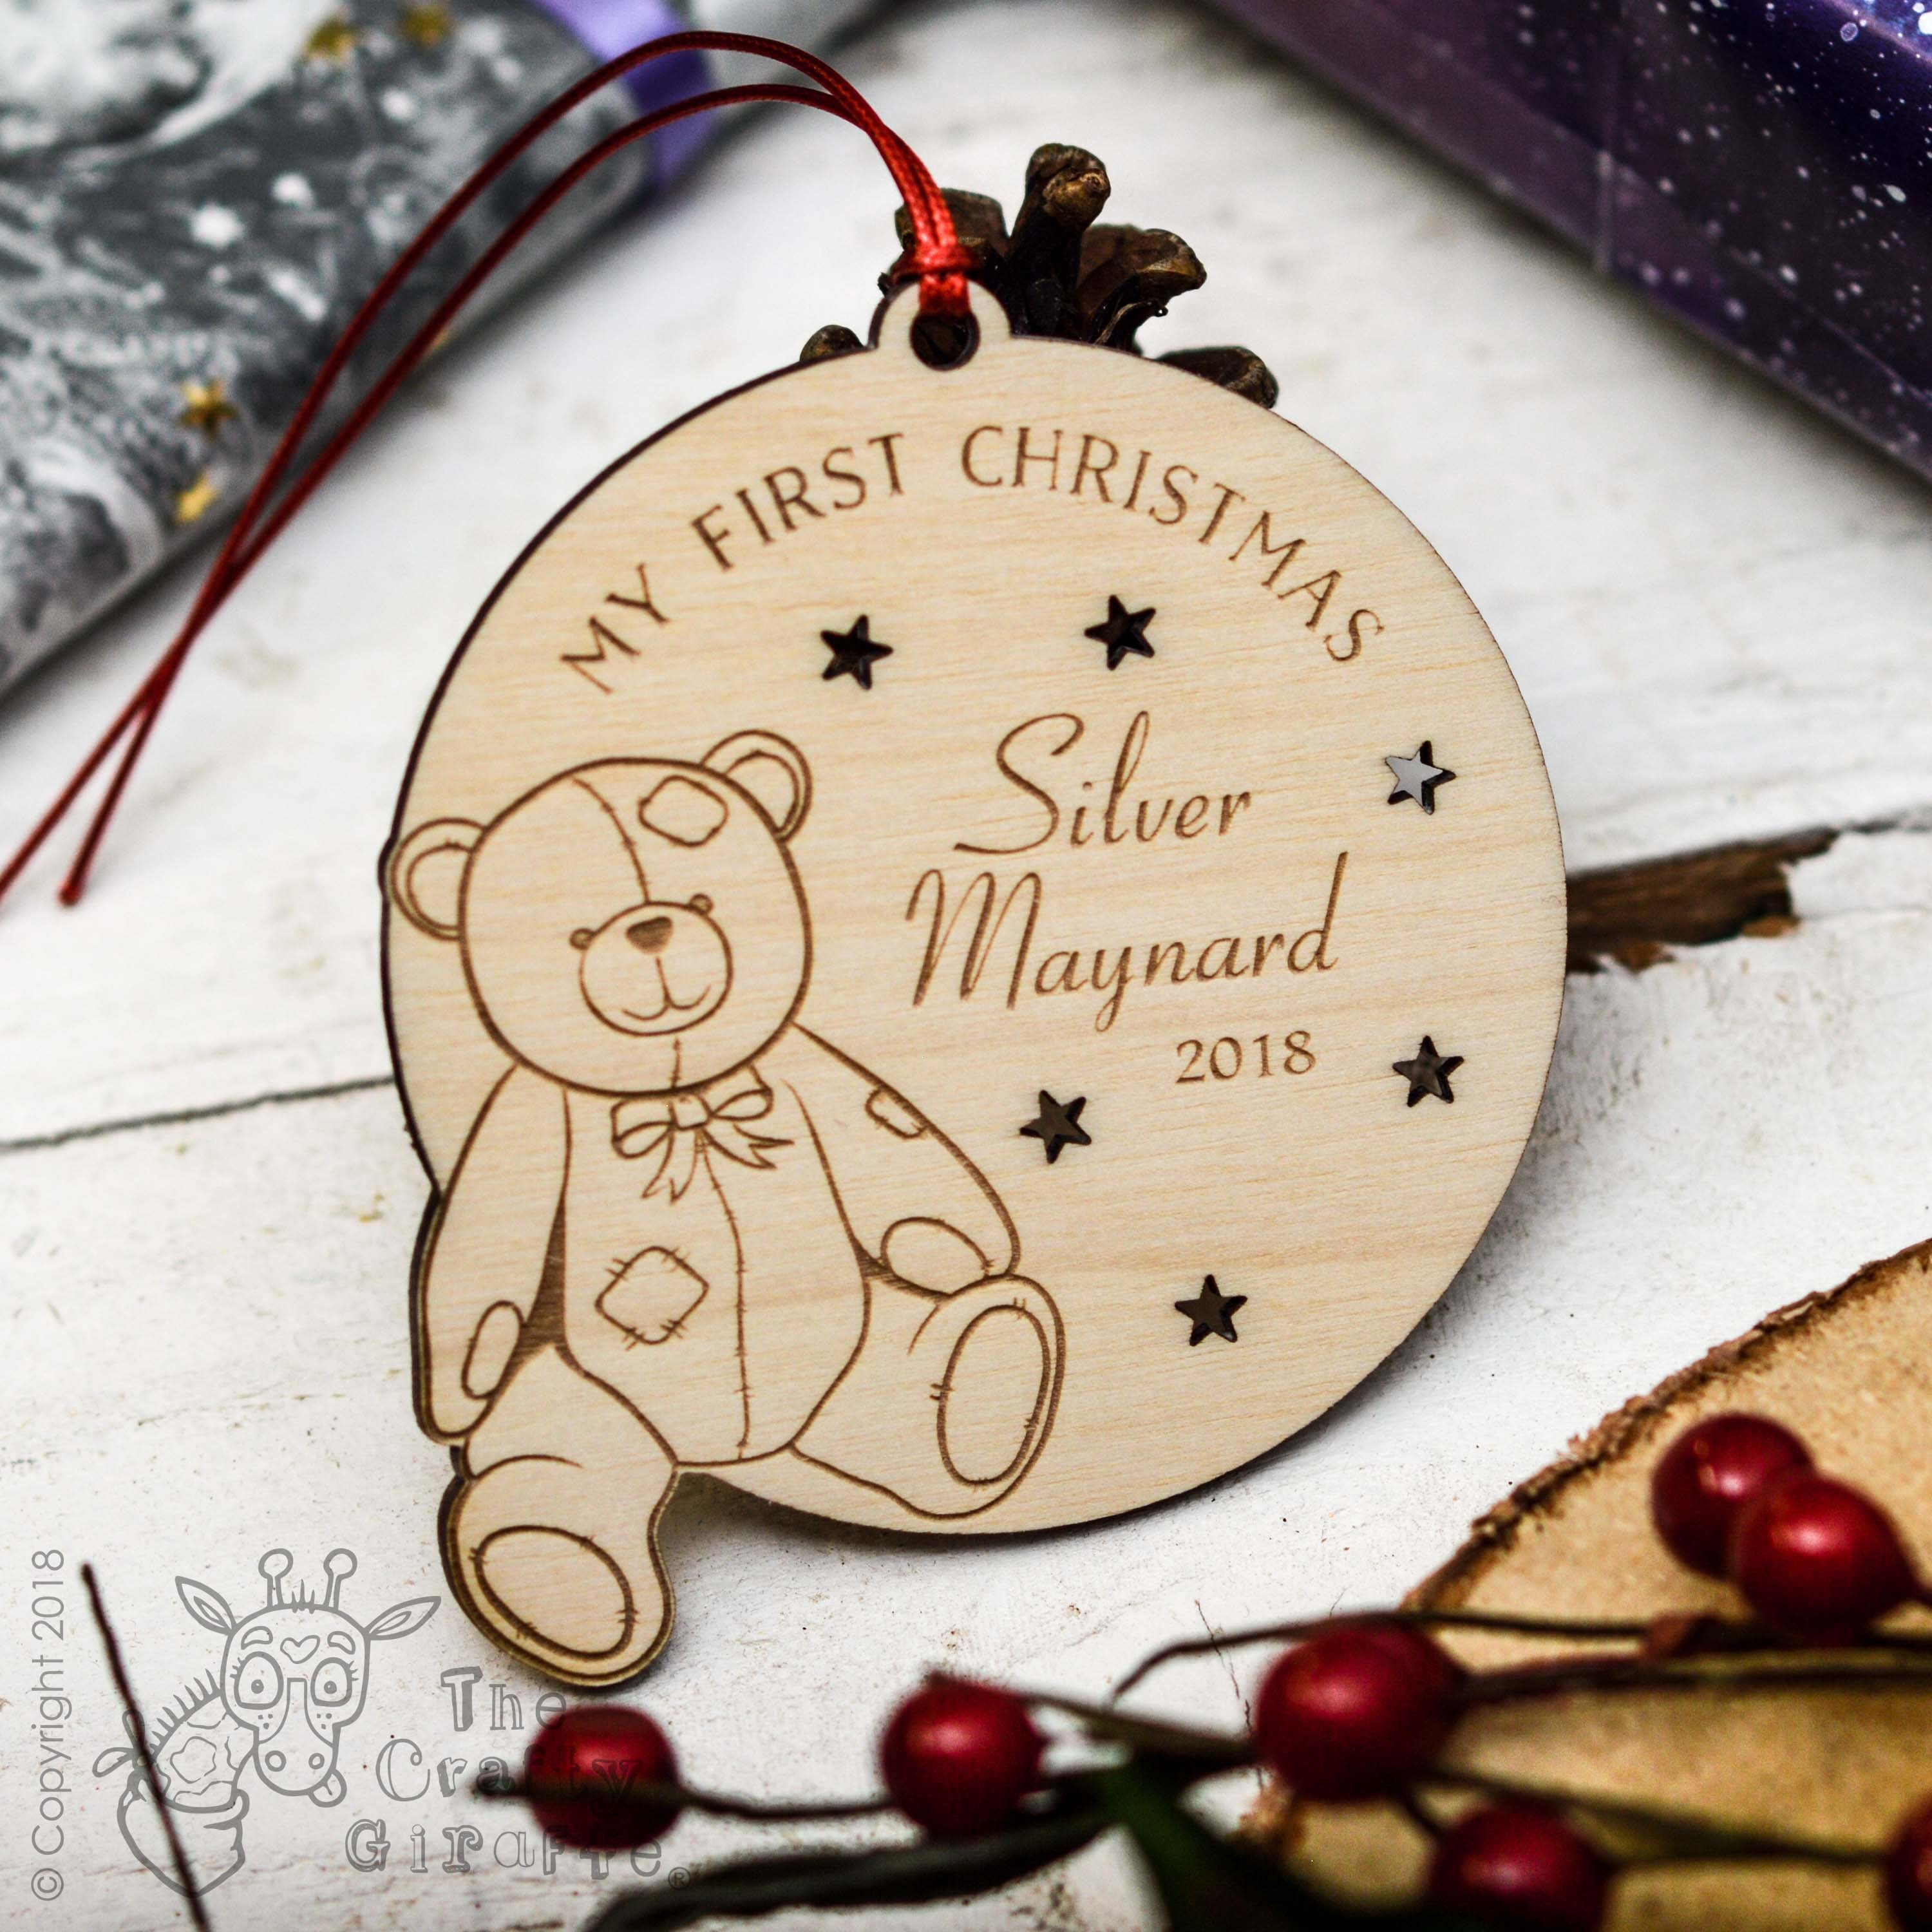 BOGOF - First Christmas Decorations